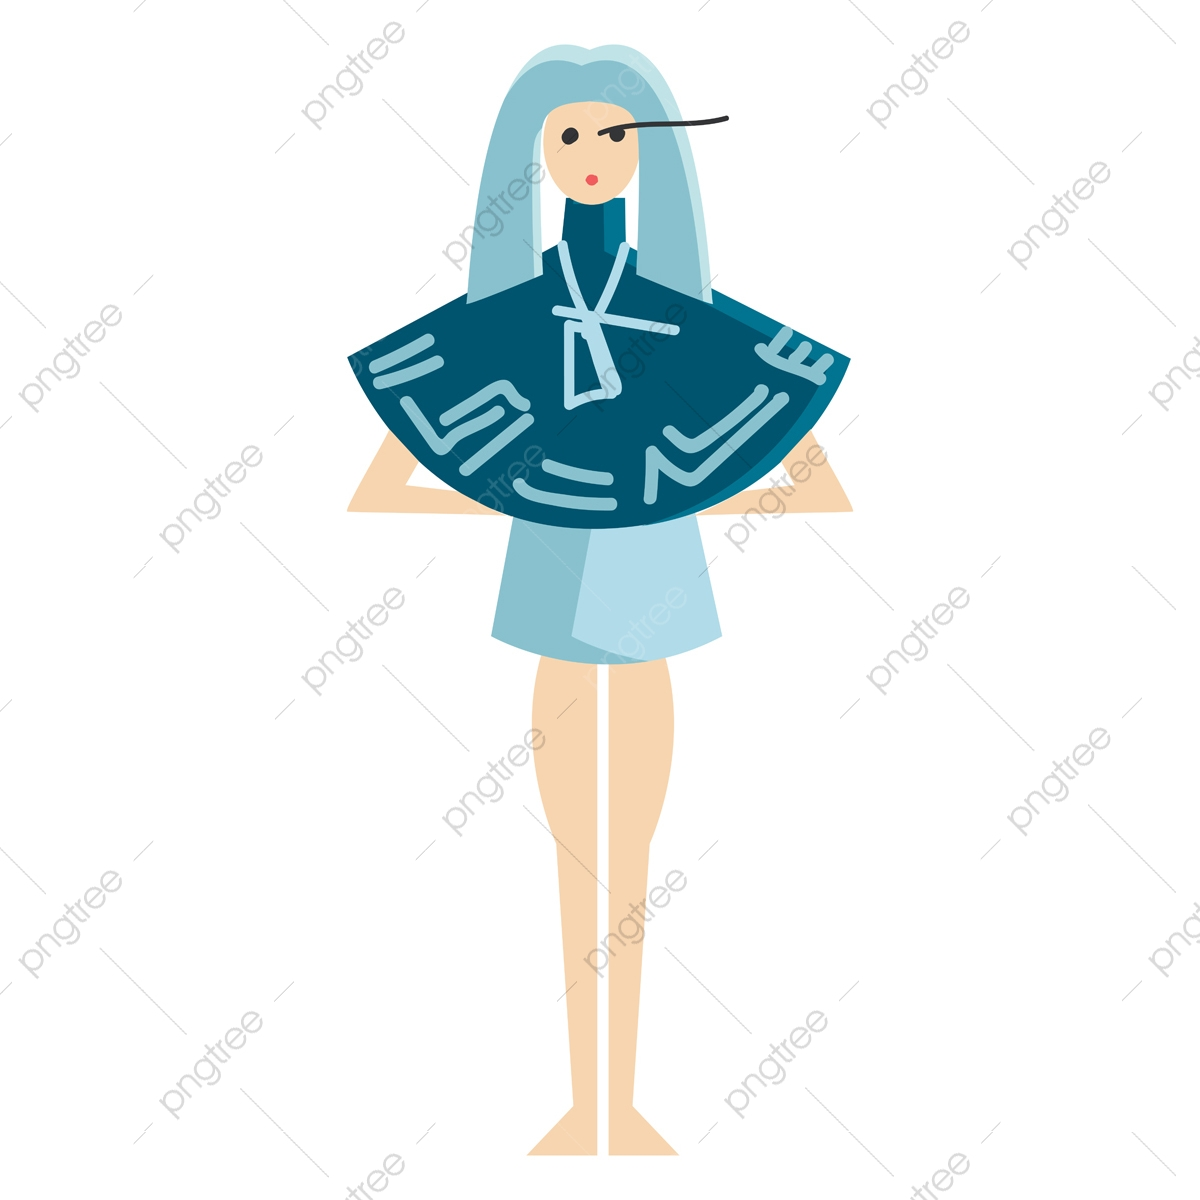 ramp walk png vector psd and clipart with transparent background for free download pngtree https pngtree com freepng a model wearing a fashionable dress for the ramp walk vector col 5279854 html